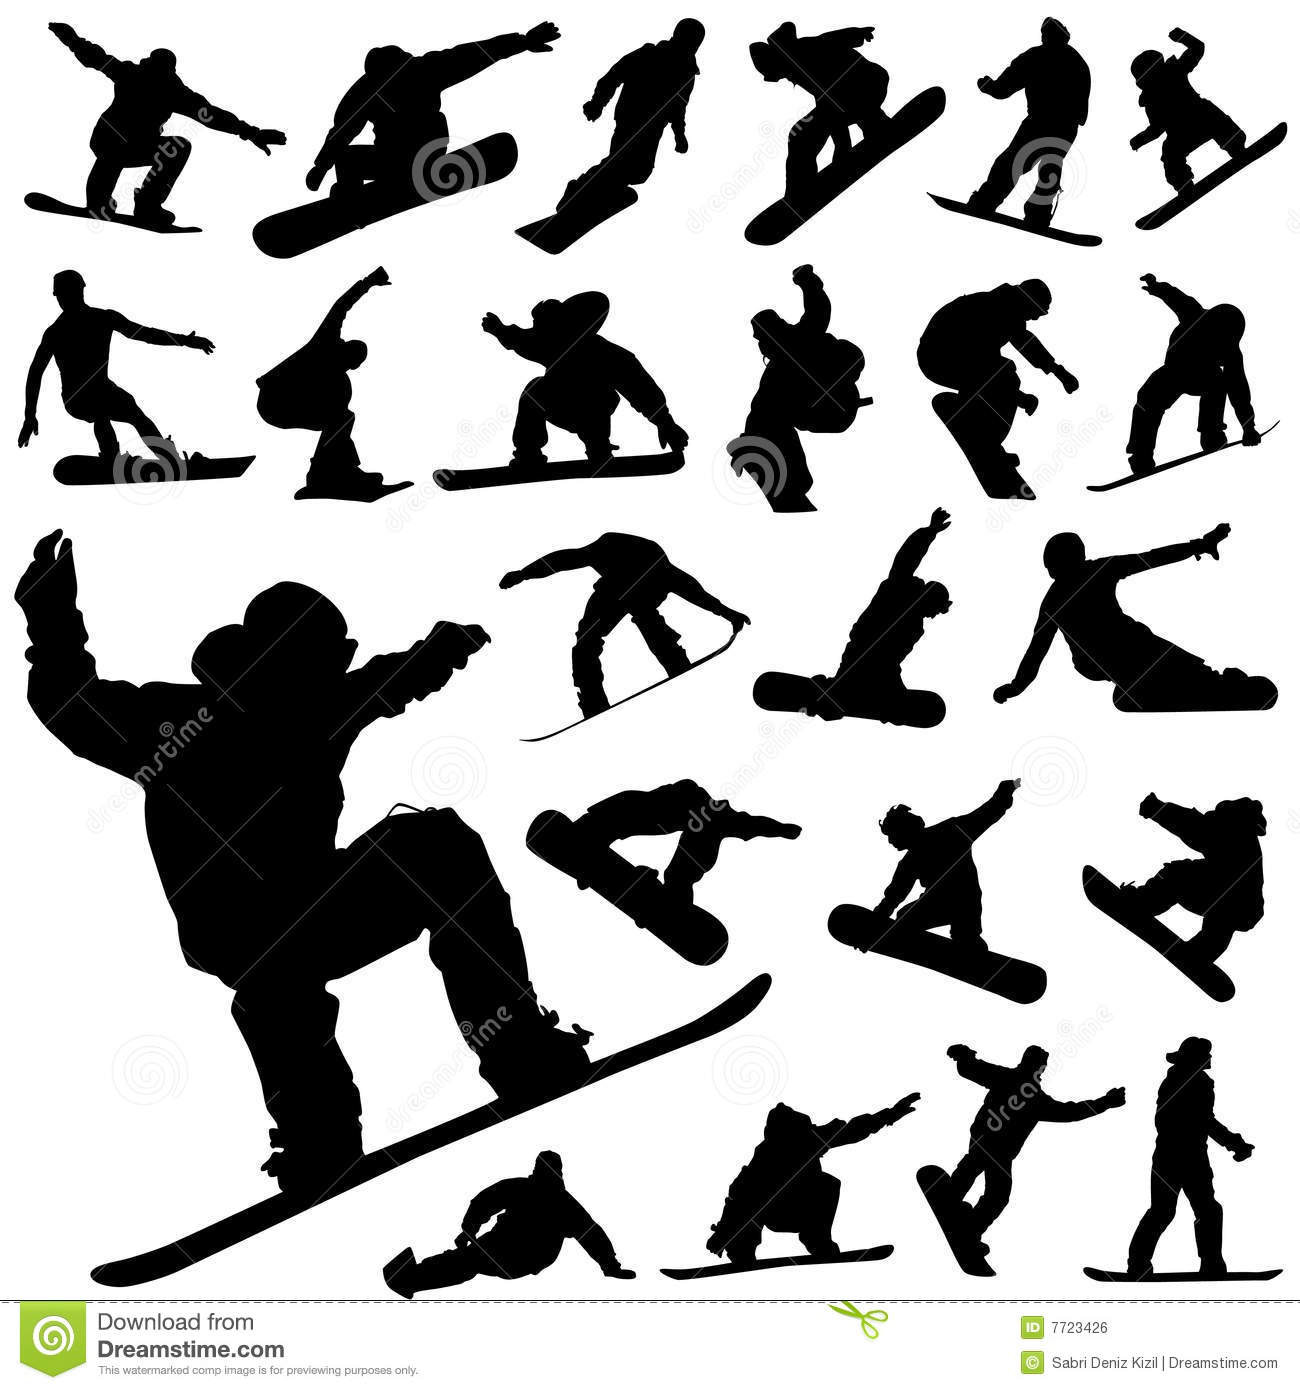 7 Snowboard Vector Icon Images